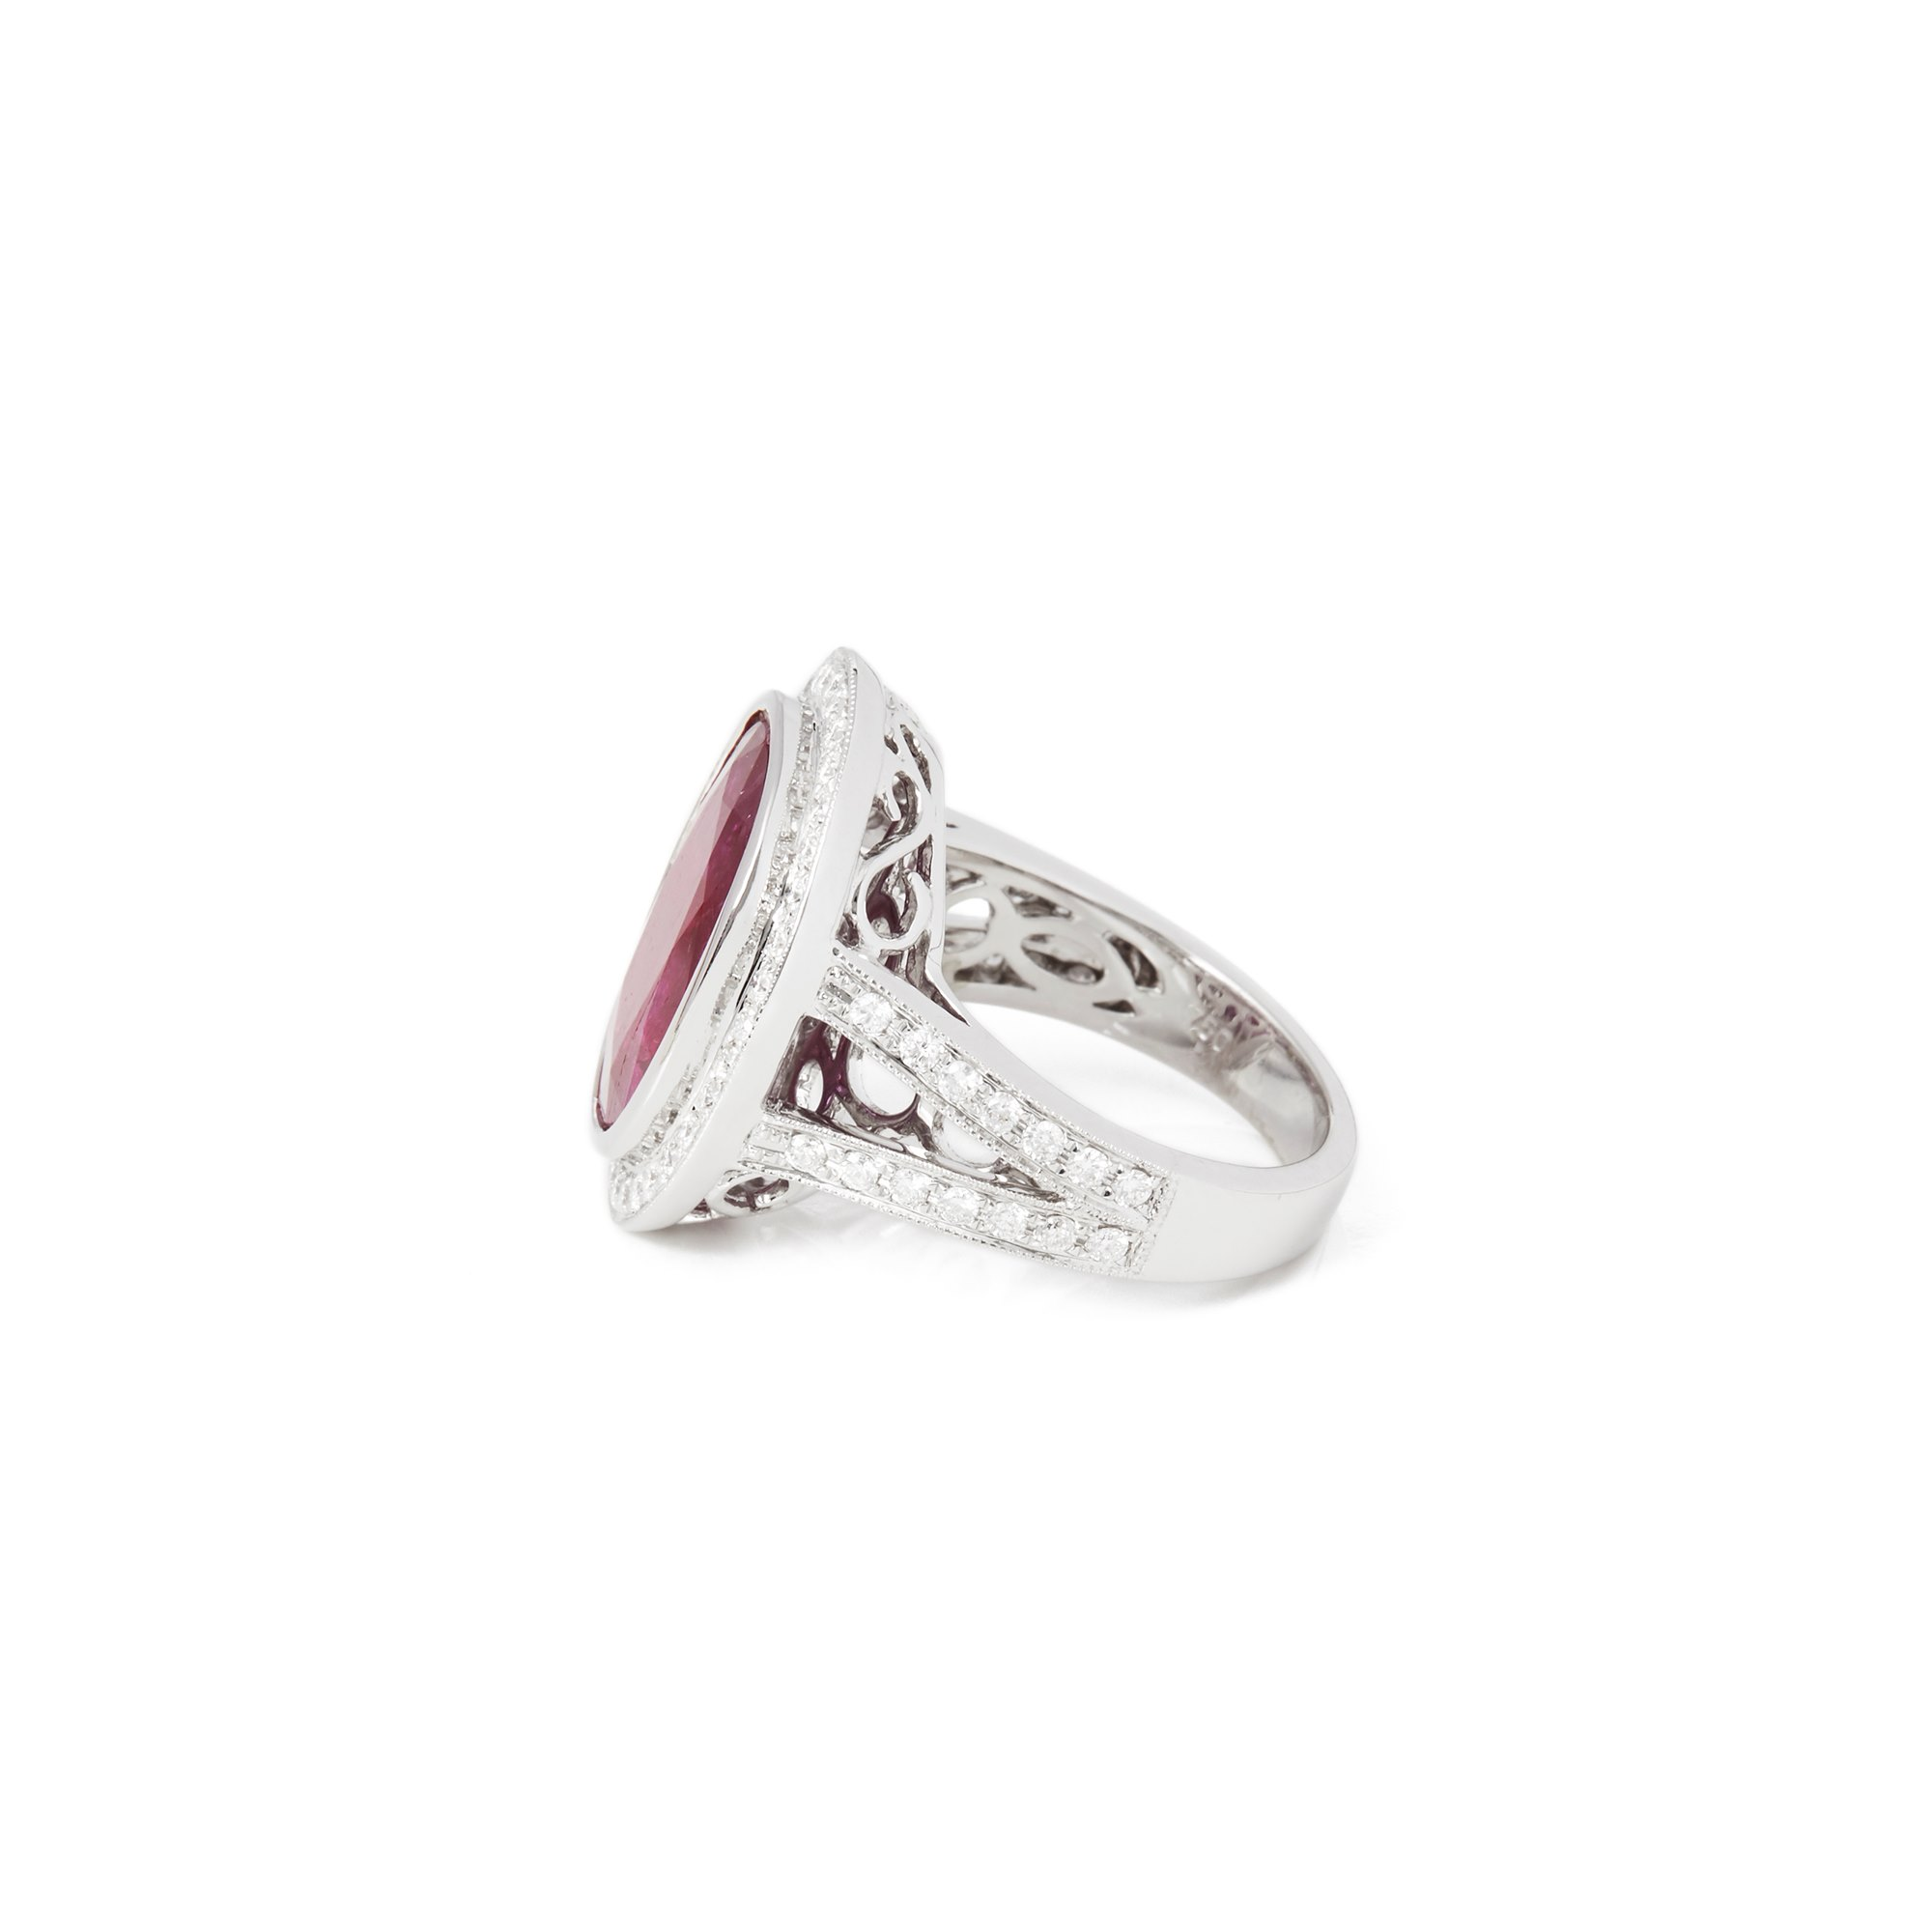 David Jerome Certified 7.1ct Oval Cut Ruby and Diamond 18ct Gold Ring